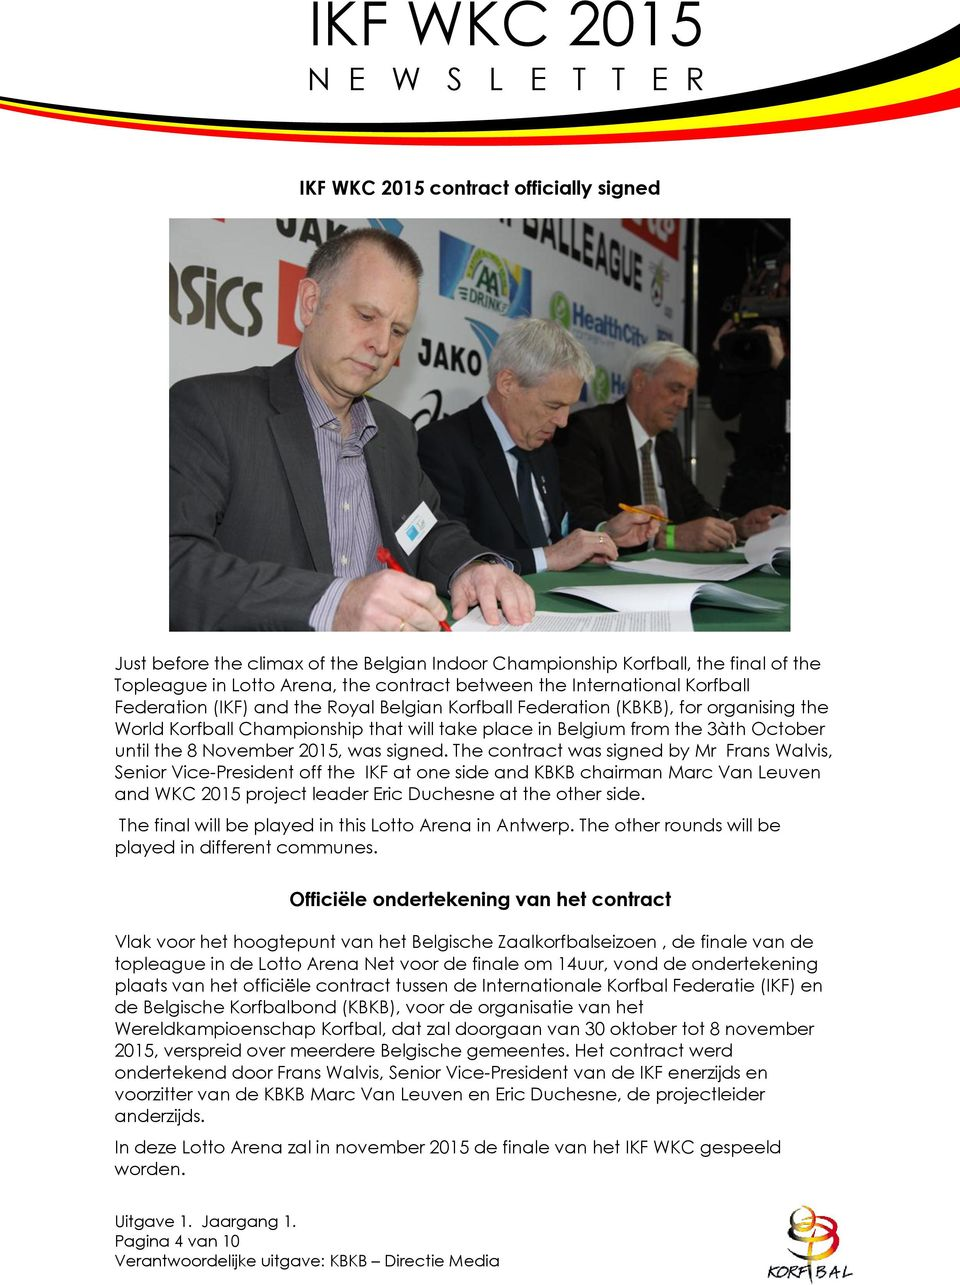 signed. The contract was signed by Mr Frans Walvis, Senior Vice-President off the IKF at one side and KBKB chairman Marc Van Leuven and WKC 2015 project leader Eric Duchesne at the other side.